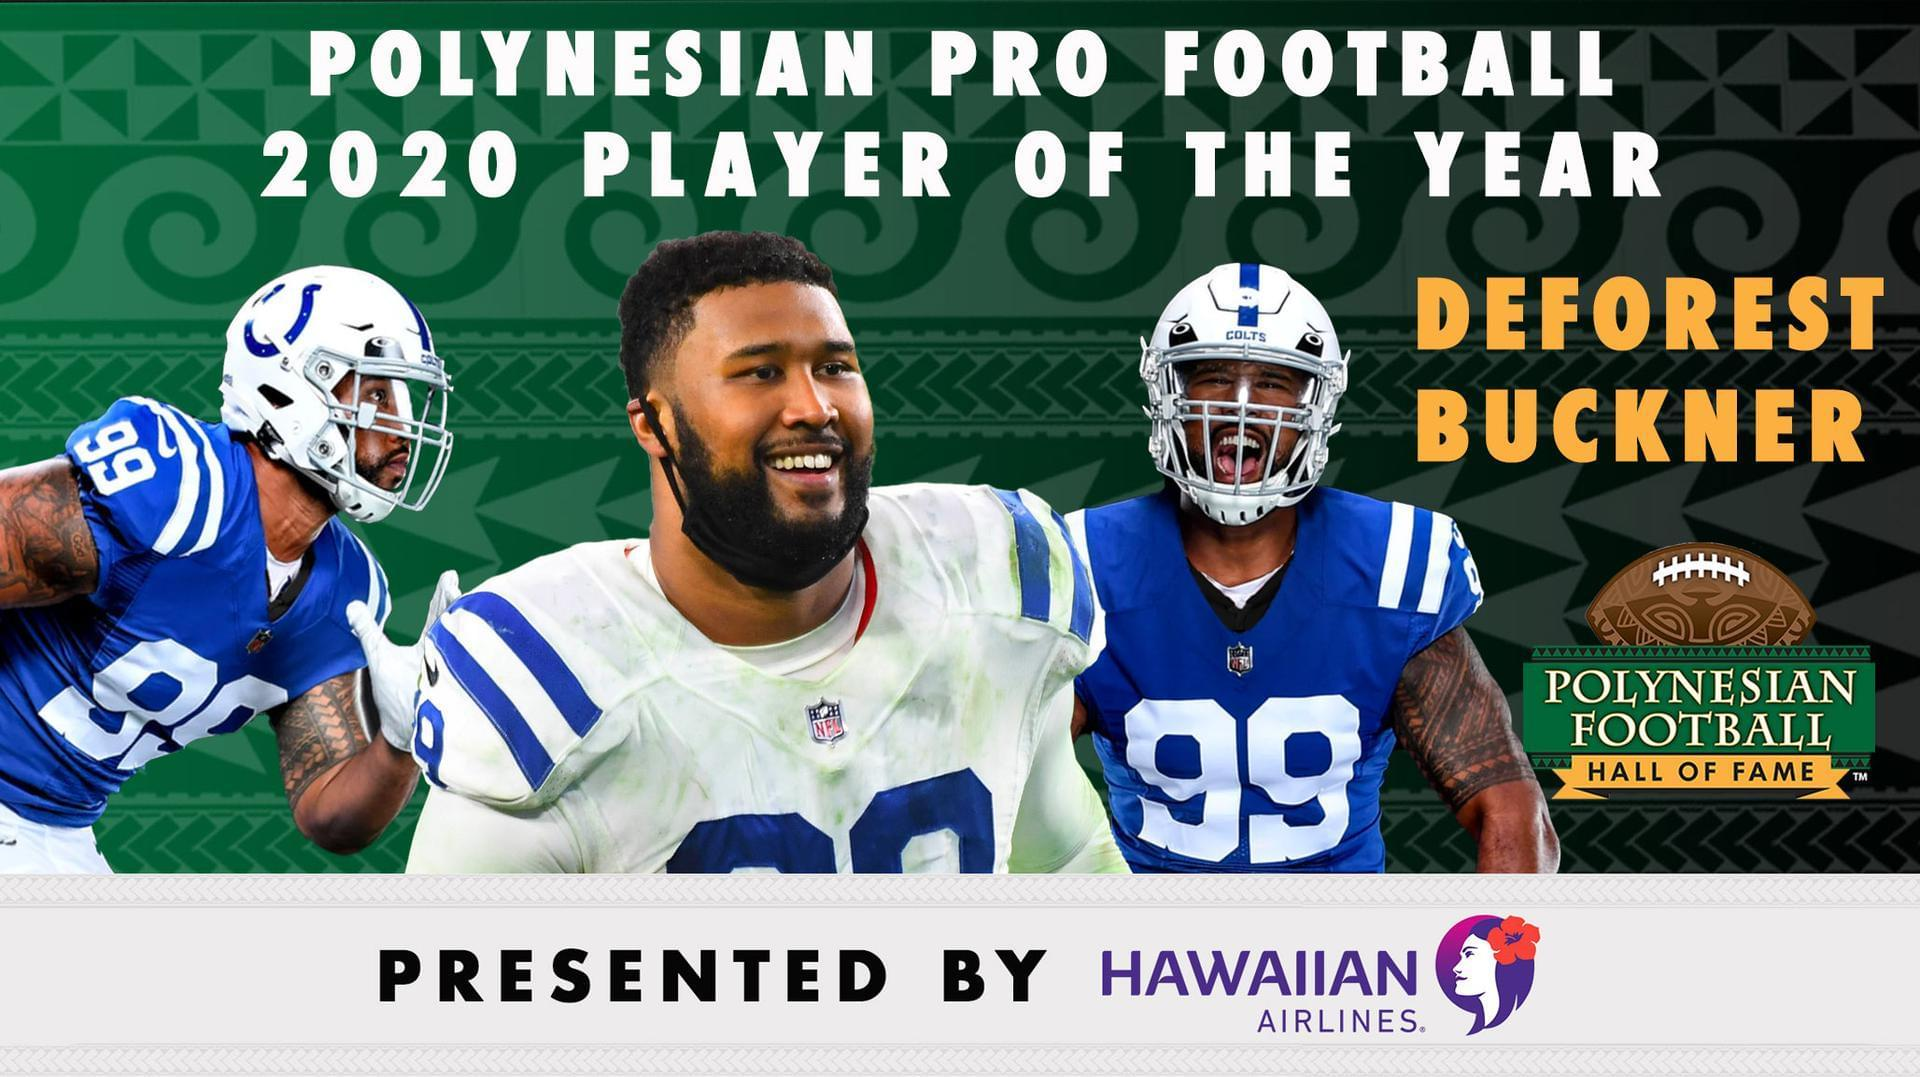 Buckner selected as 2020 Polynesian Pro Football Player of the Year